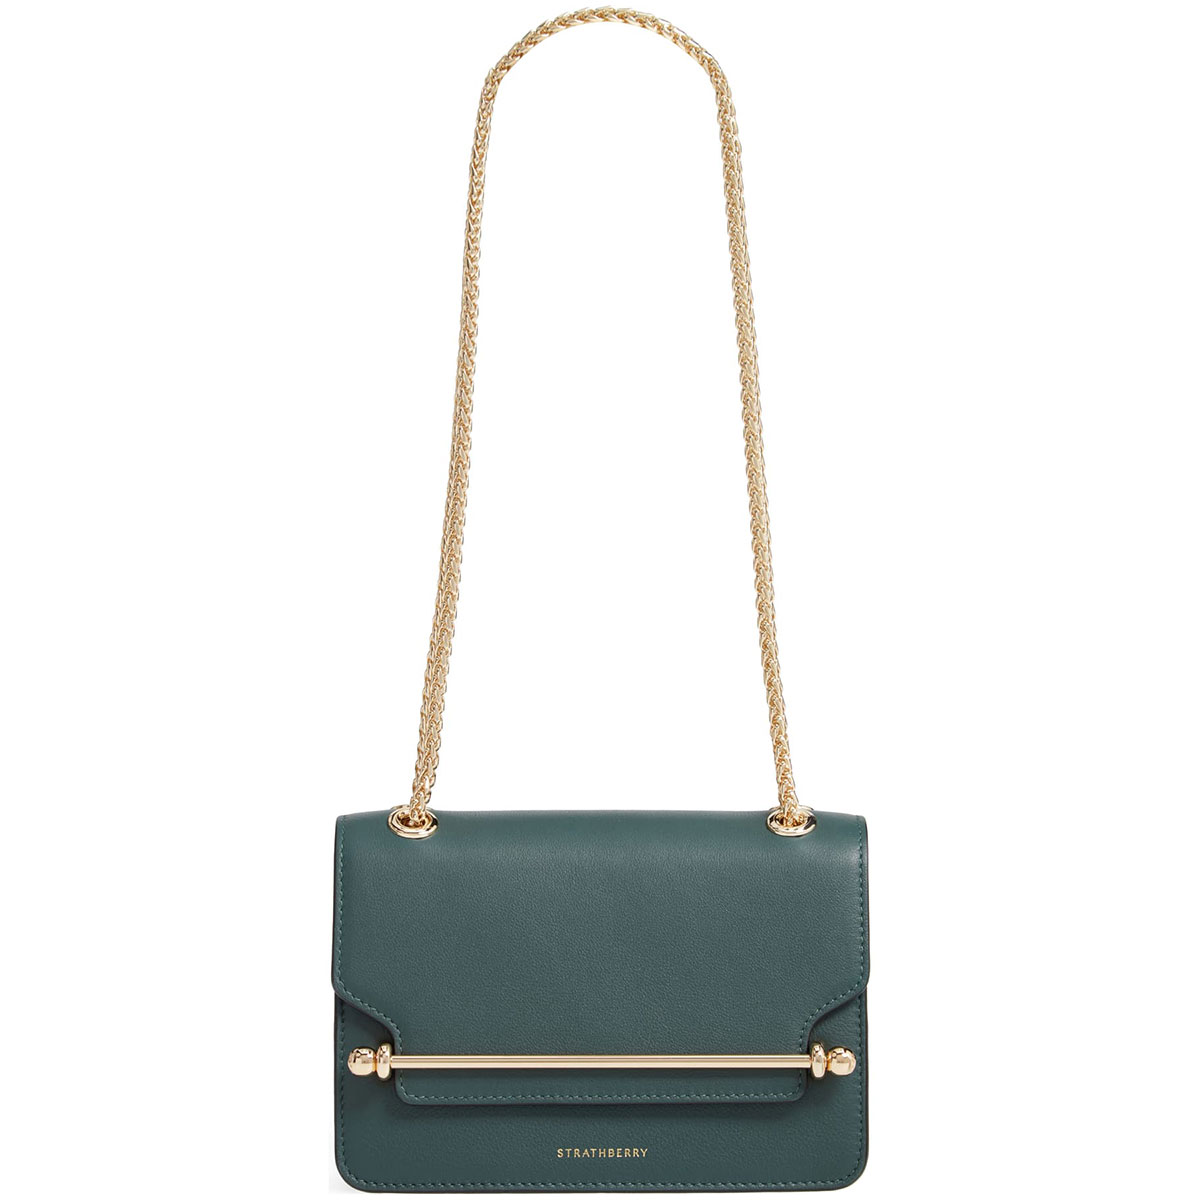 Strathberry Mini East/West Leather Bottle Green Crossbody Bag